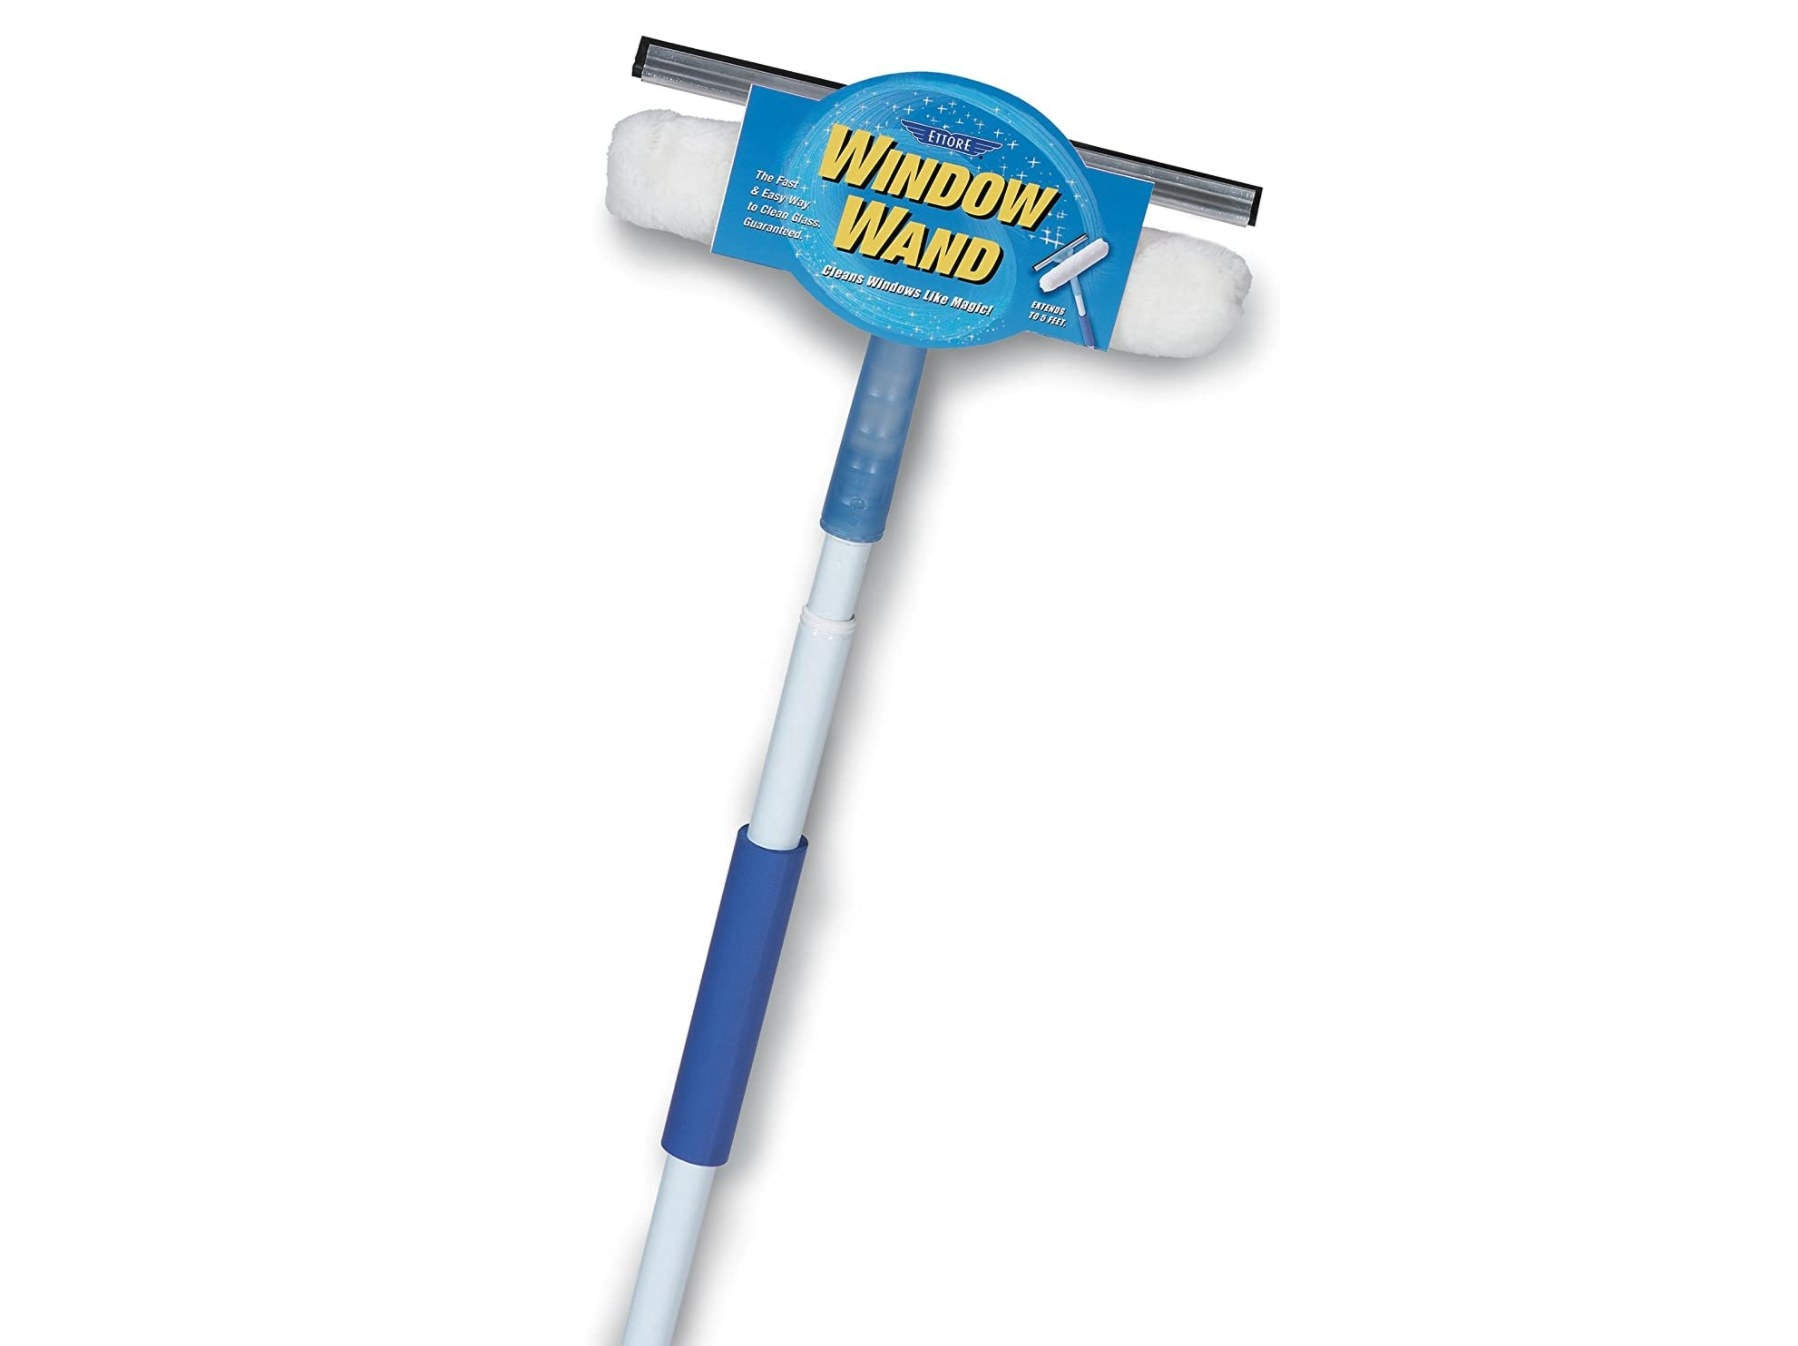 A Window Wand that has a built-in sponge and a squeegee